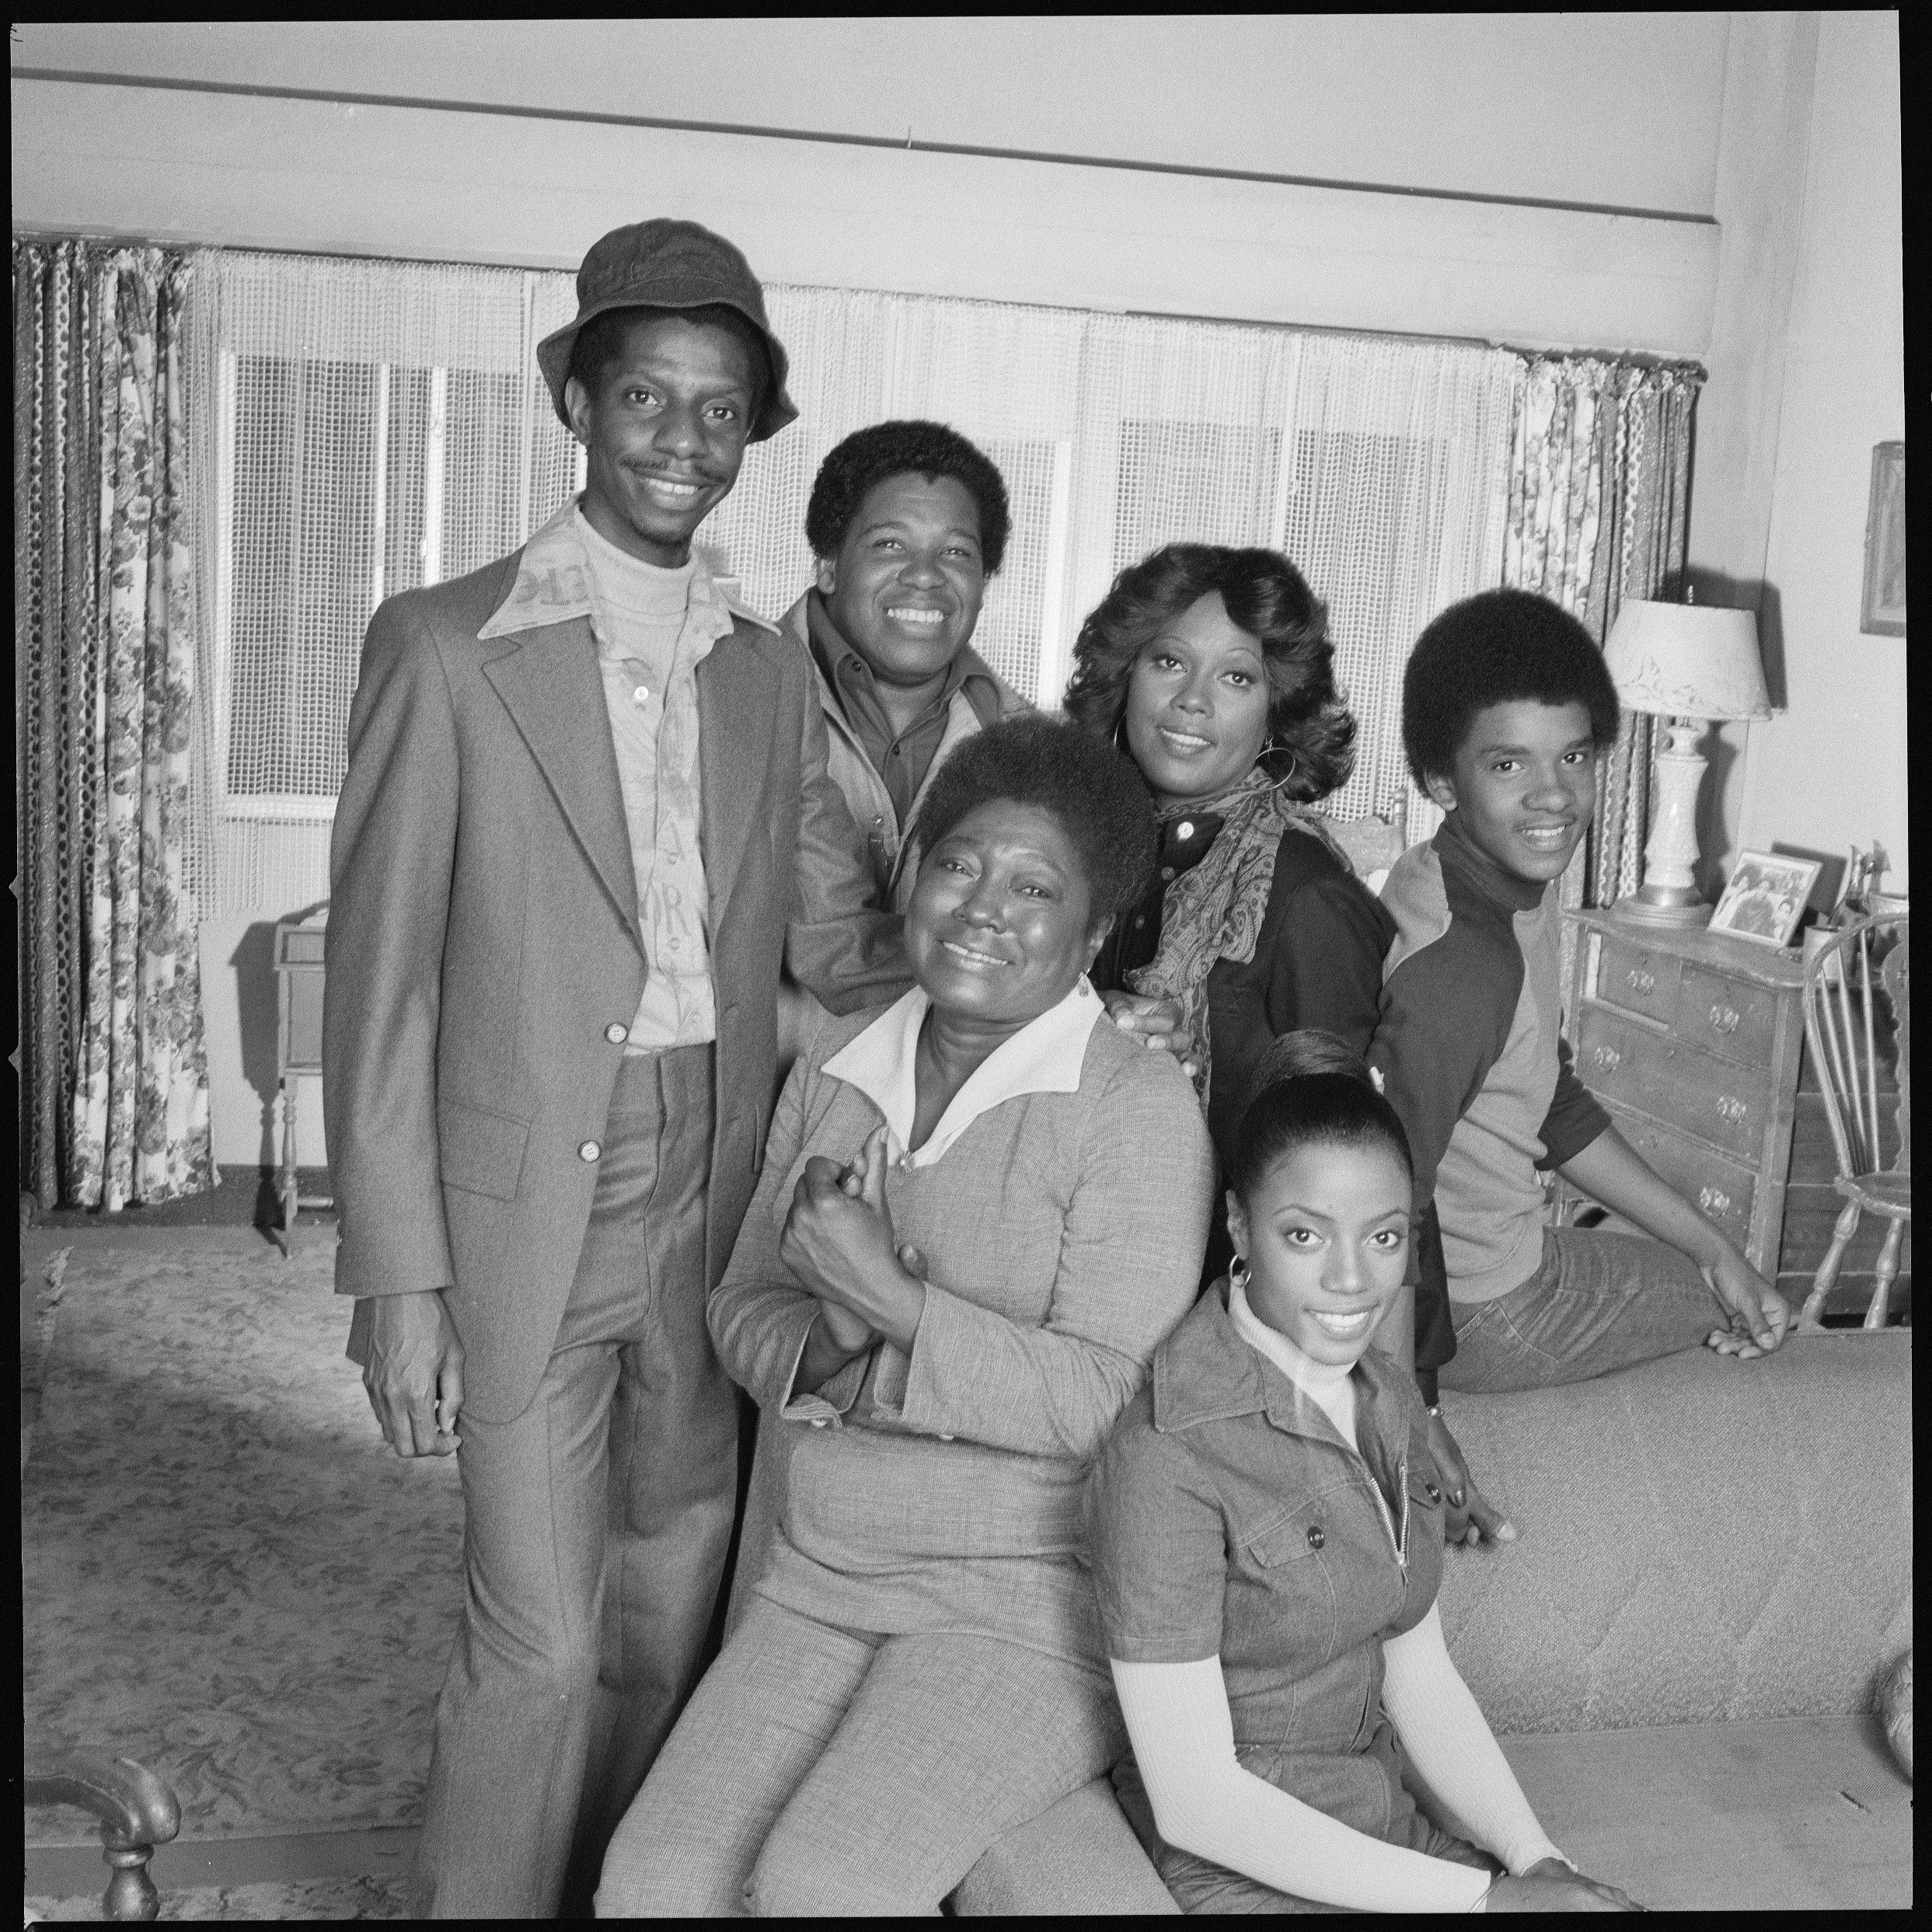 Jimmie Walker, Johnny Brown, Ja'net DuBois, and Ralph Carter pose for a portrait in the late ate 1970s. | Source: Getty Images